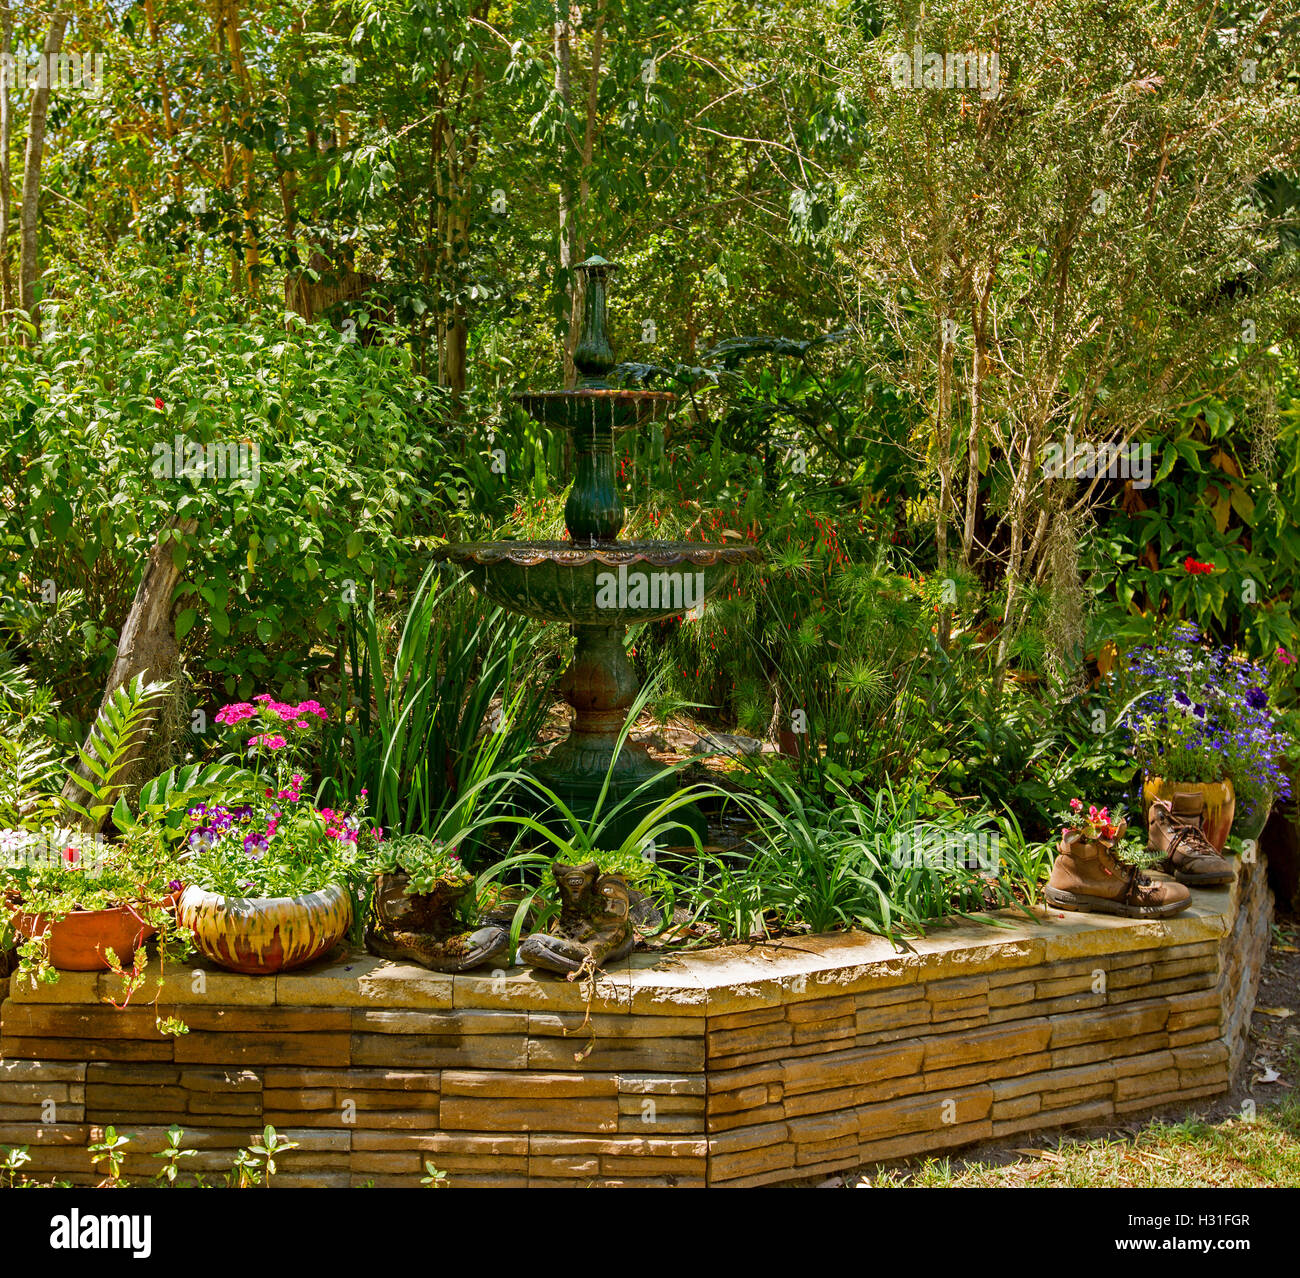 Garden with ornate fountain surrounded by emerald foliage, trees ...